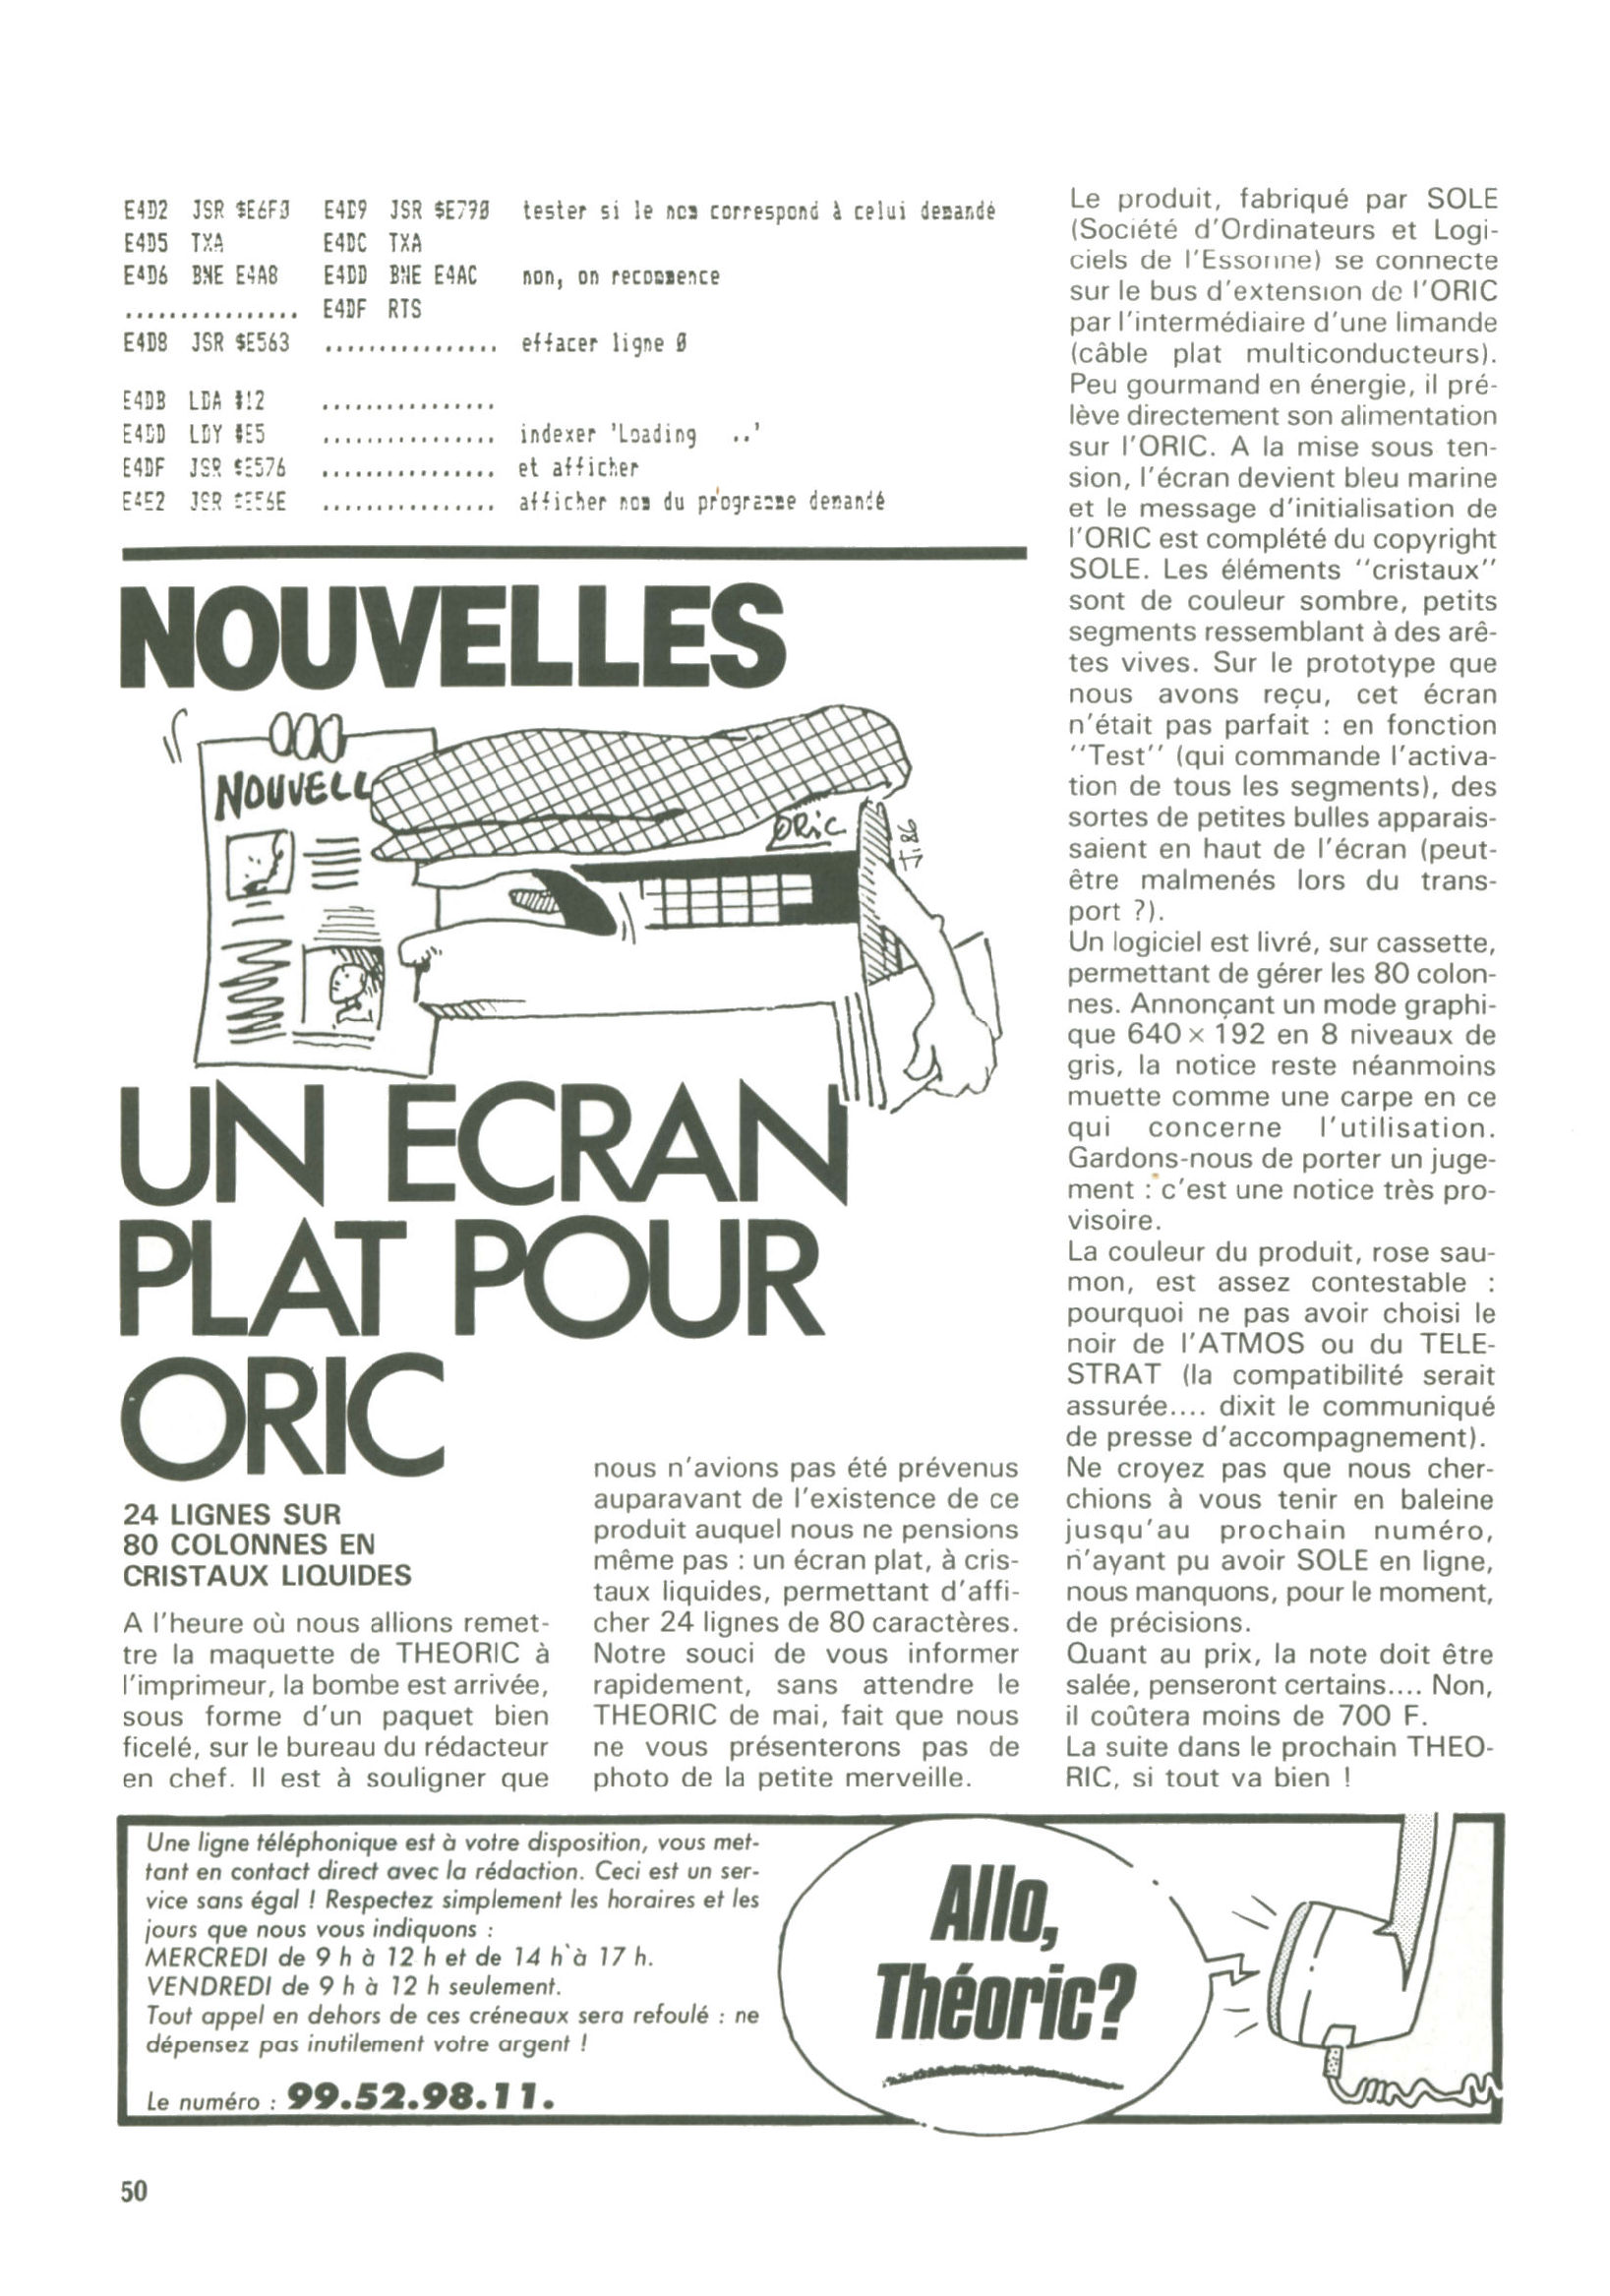 Theoric 19 - Avril-Mai 1986 - page 50.jpg